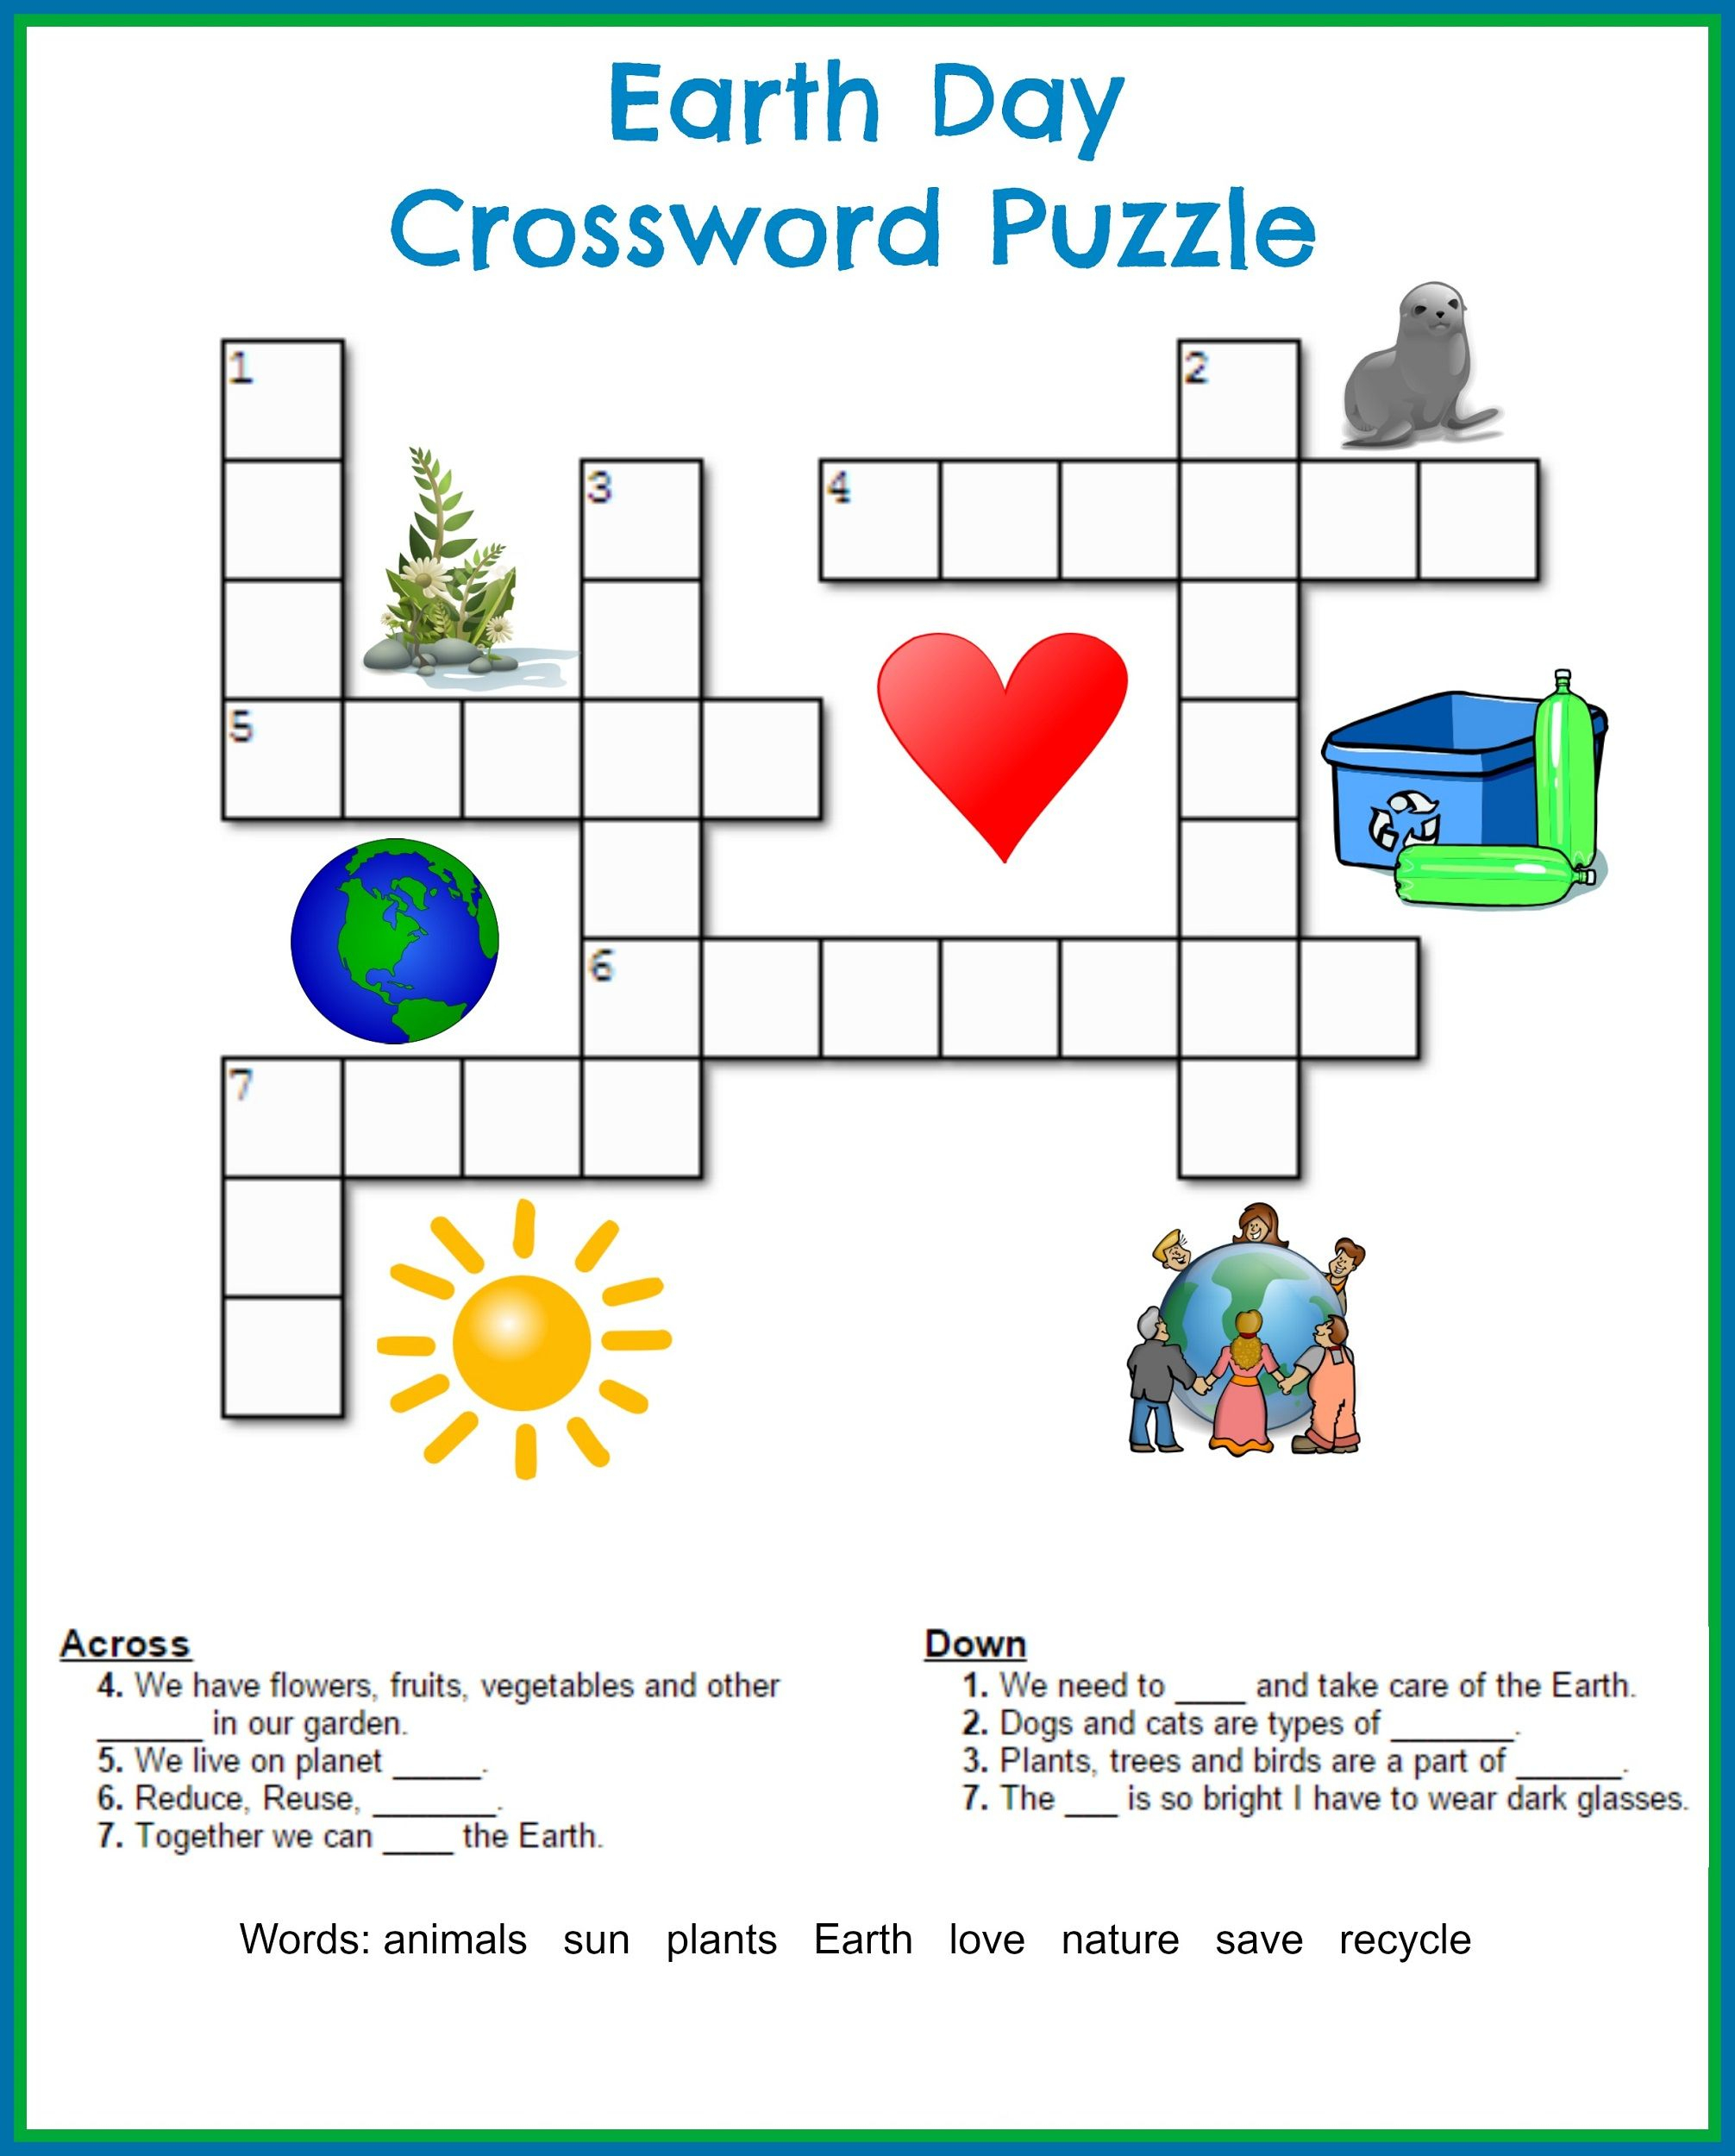 Printable Crossword Puzzles Kids | Crossword Puzzles On Earth - Printable Crossword Puzzles For 5 Year Olds